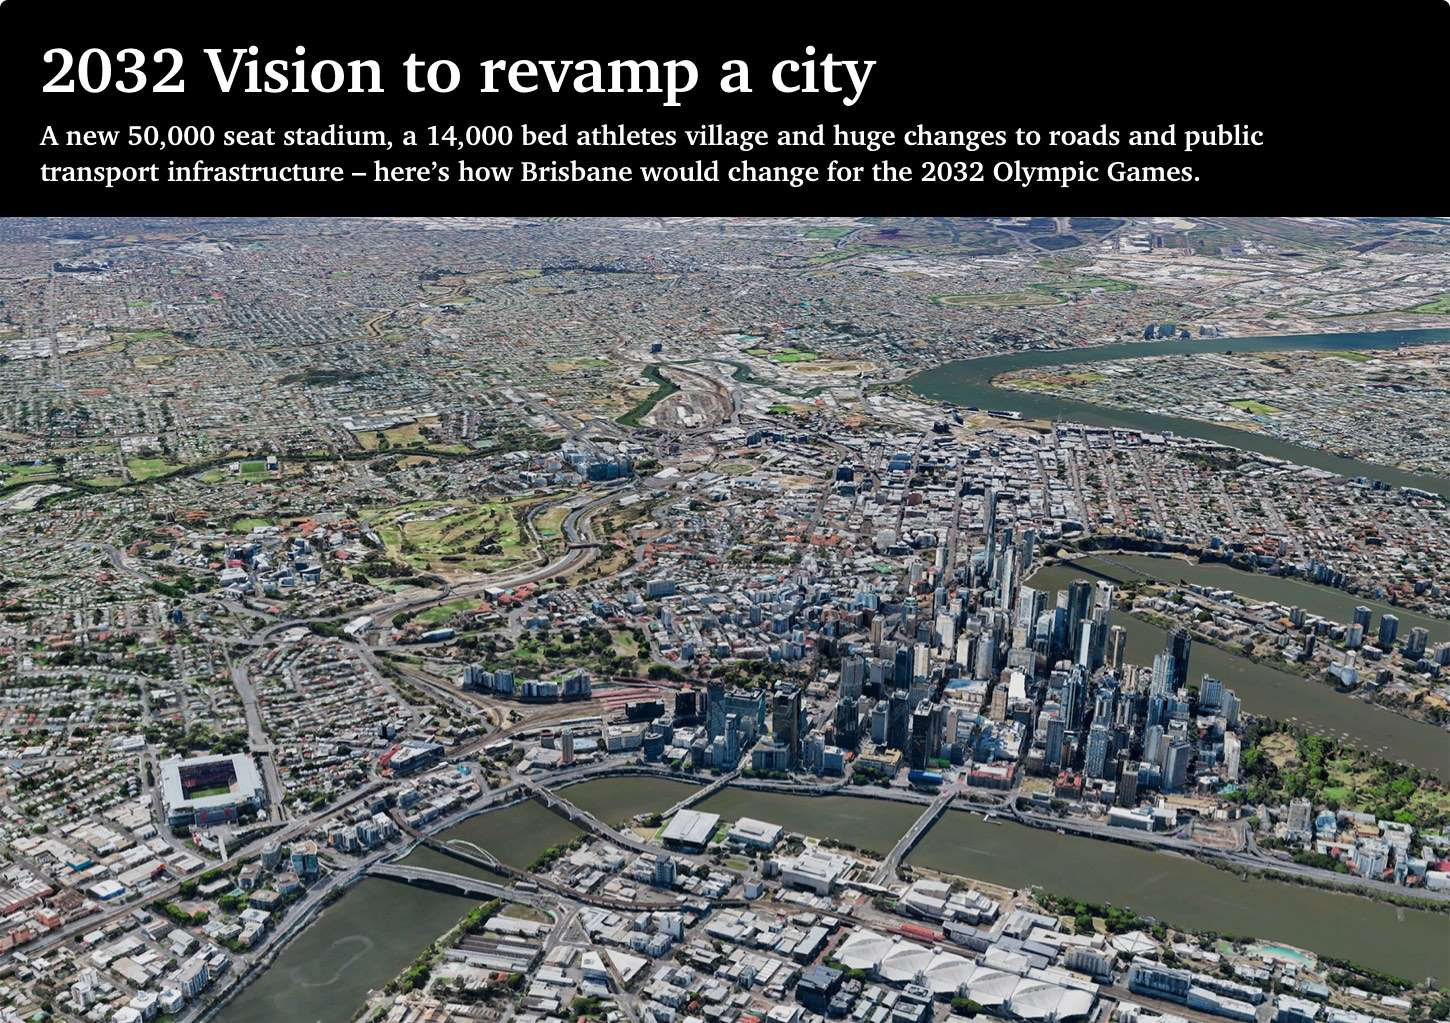 NED-3325 - 2032 Vision to revamp a city - 0